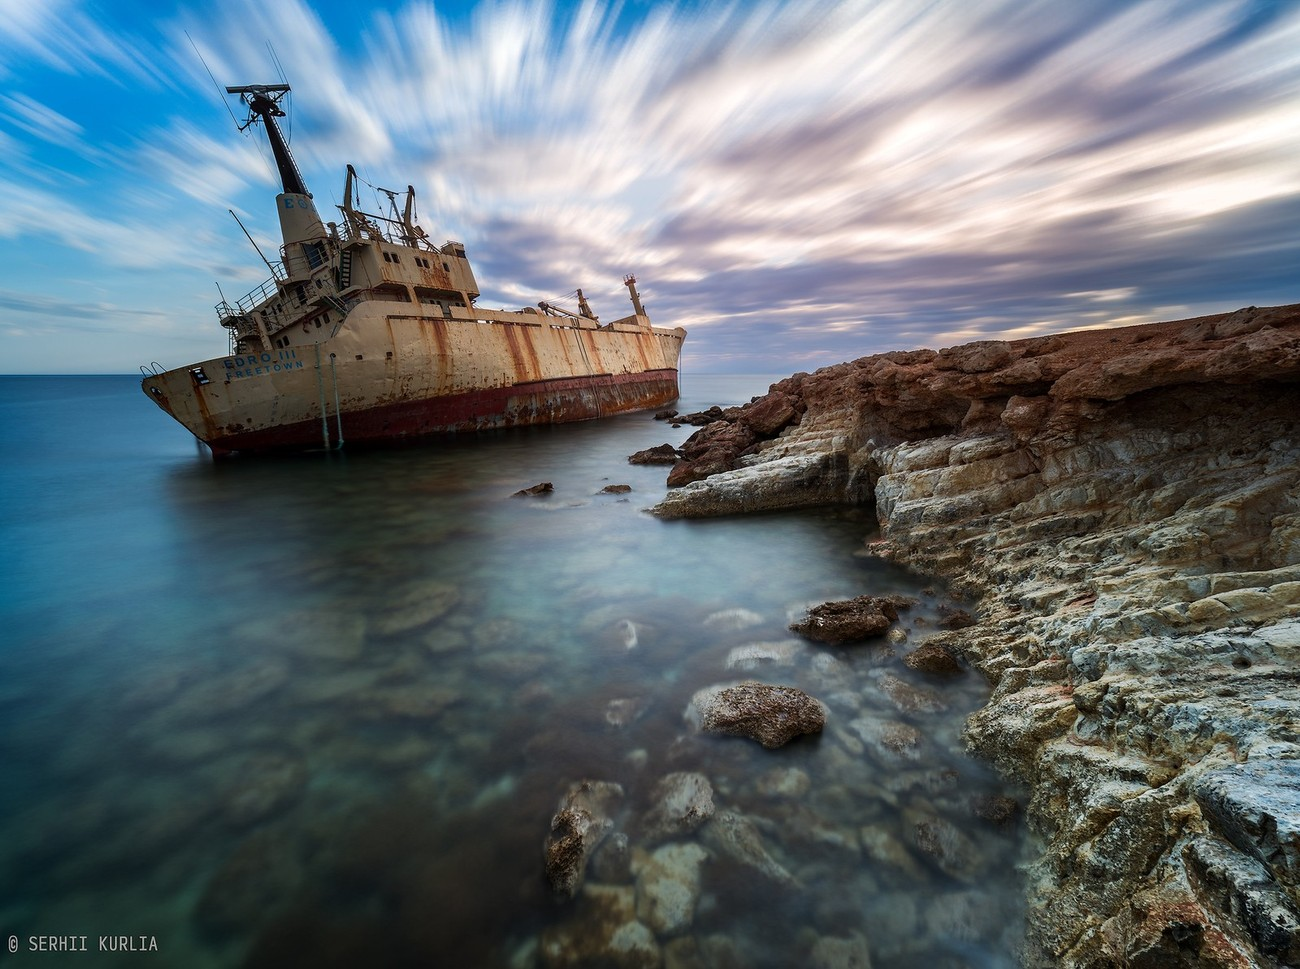 Ships And Boats Photo Contest Winners